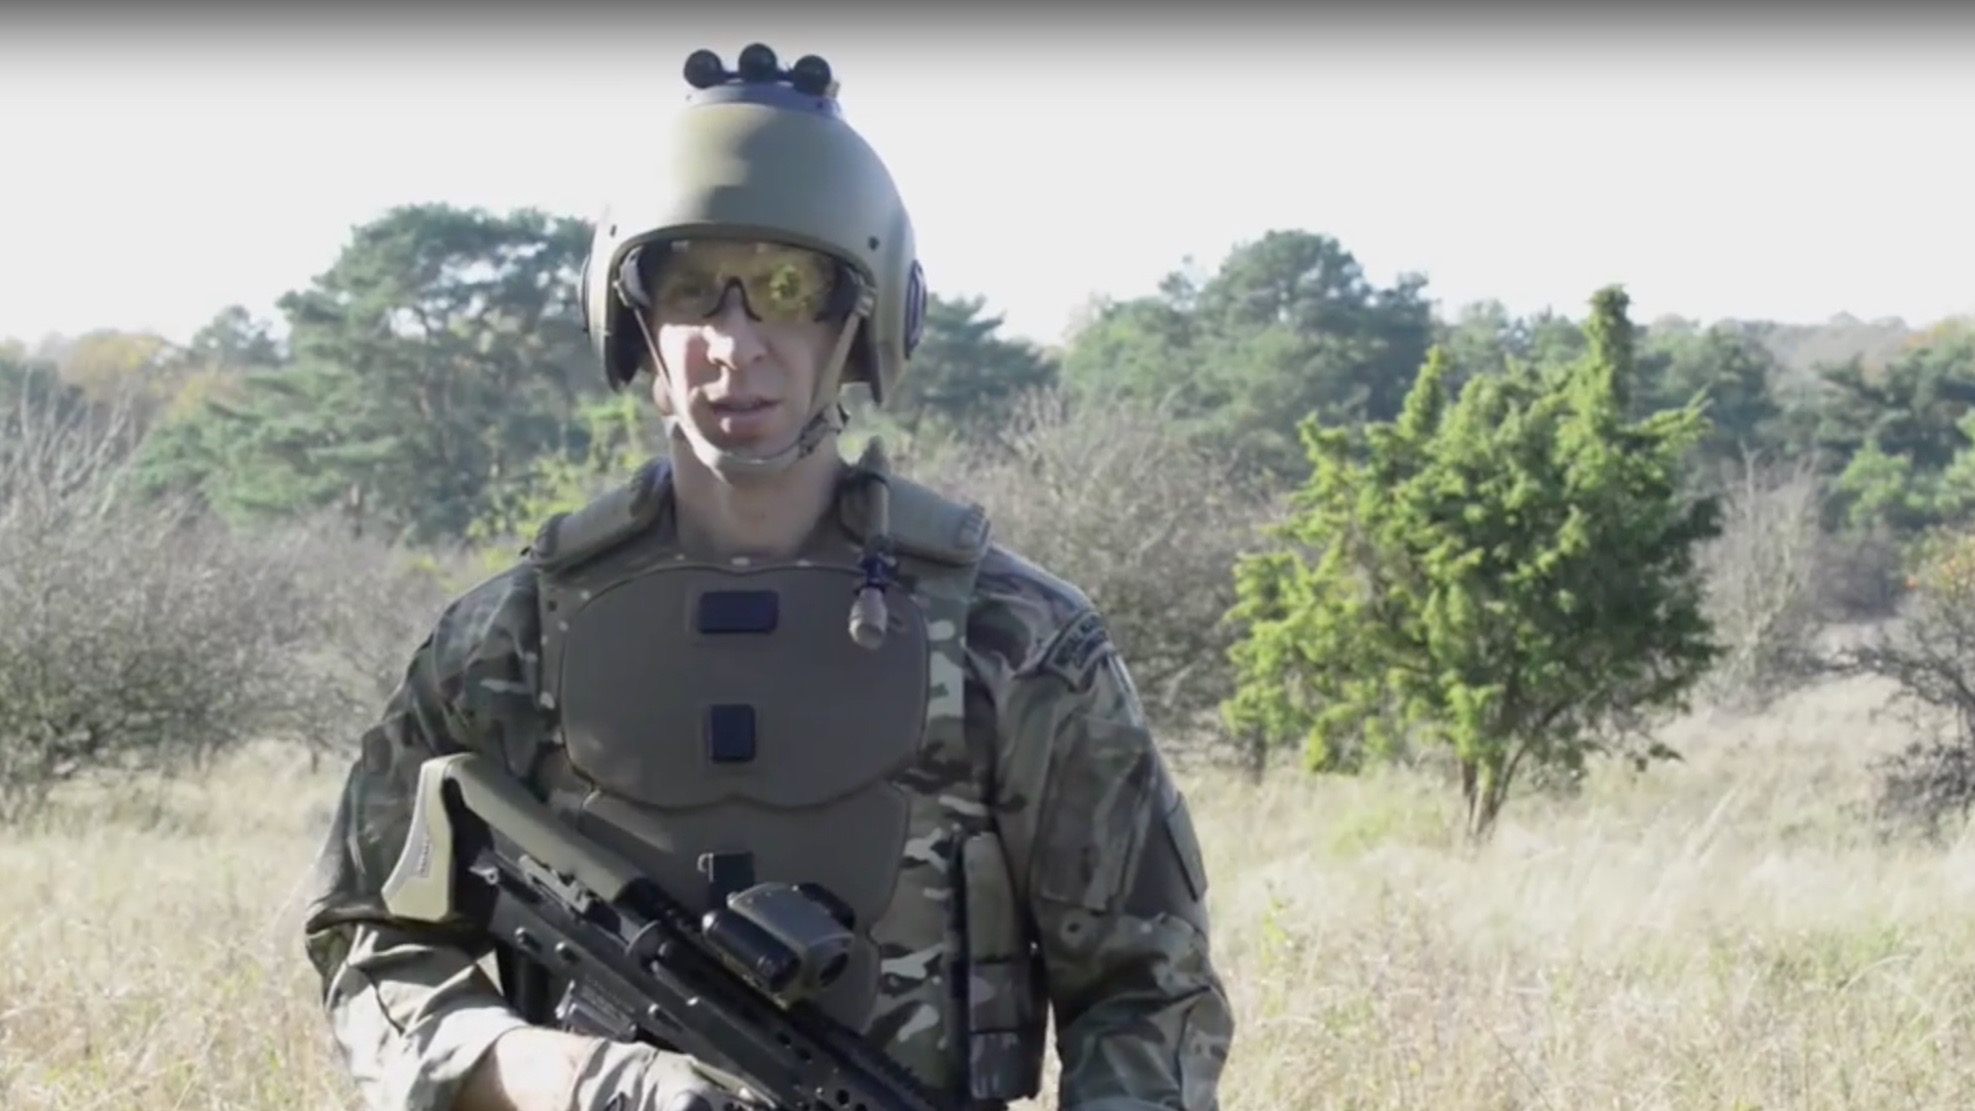 MoD unveils 'smart uniforms' for Army